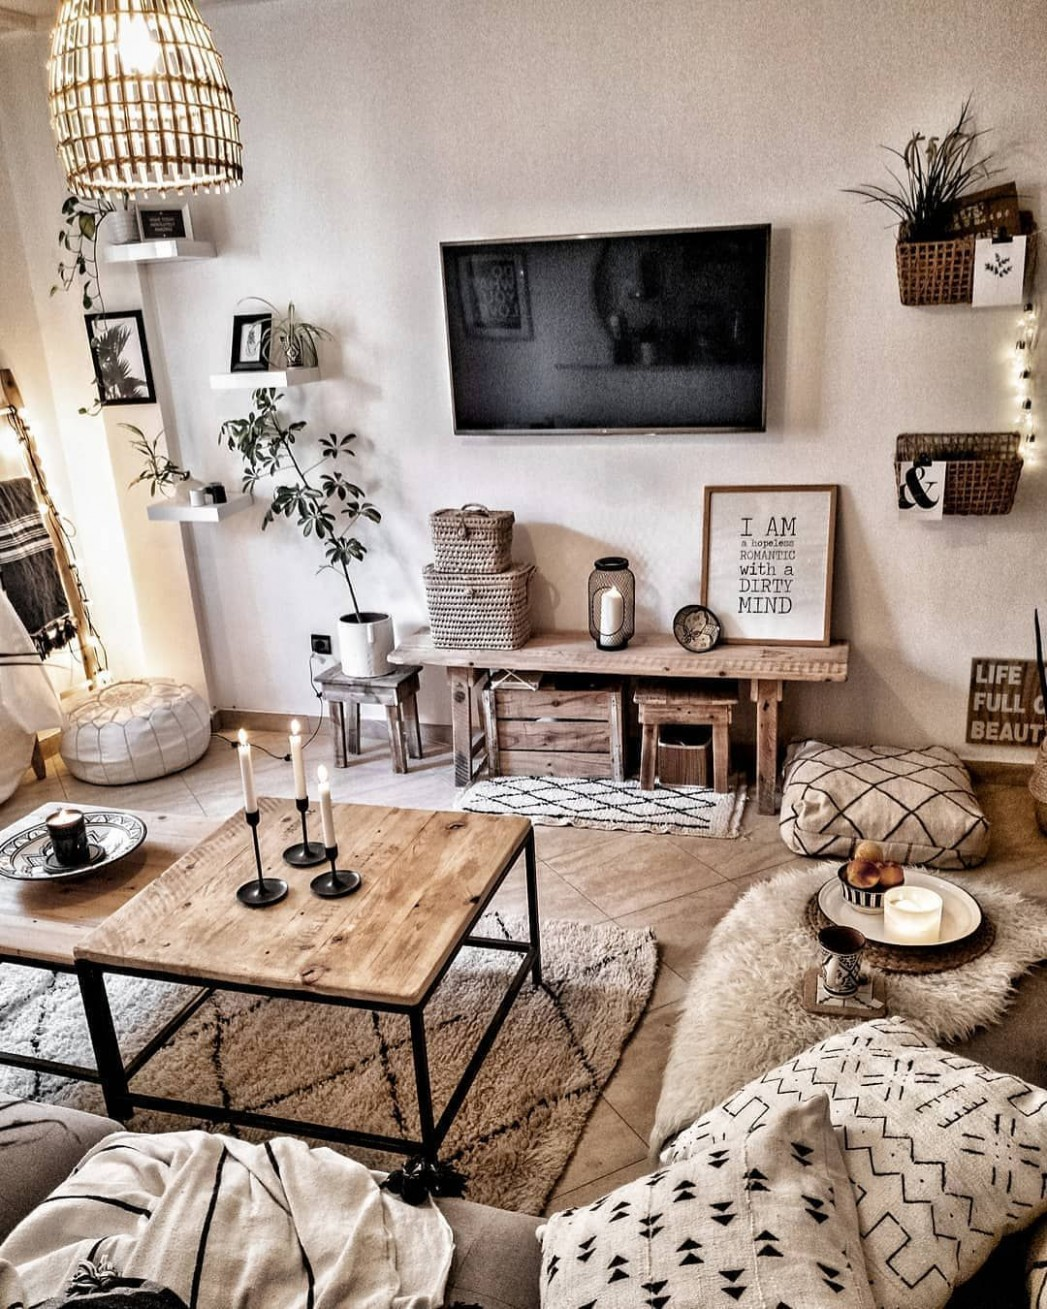 """cozi homes on Instagram: """"We LOVE this boho feel ❤ What do you  - Small Apartment Decorating Ideas Boho"""